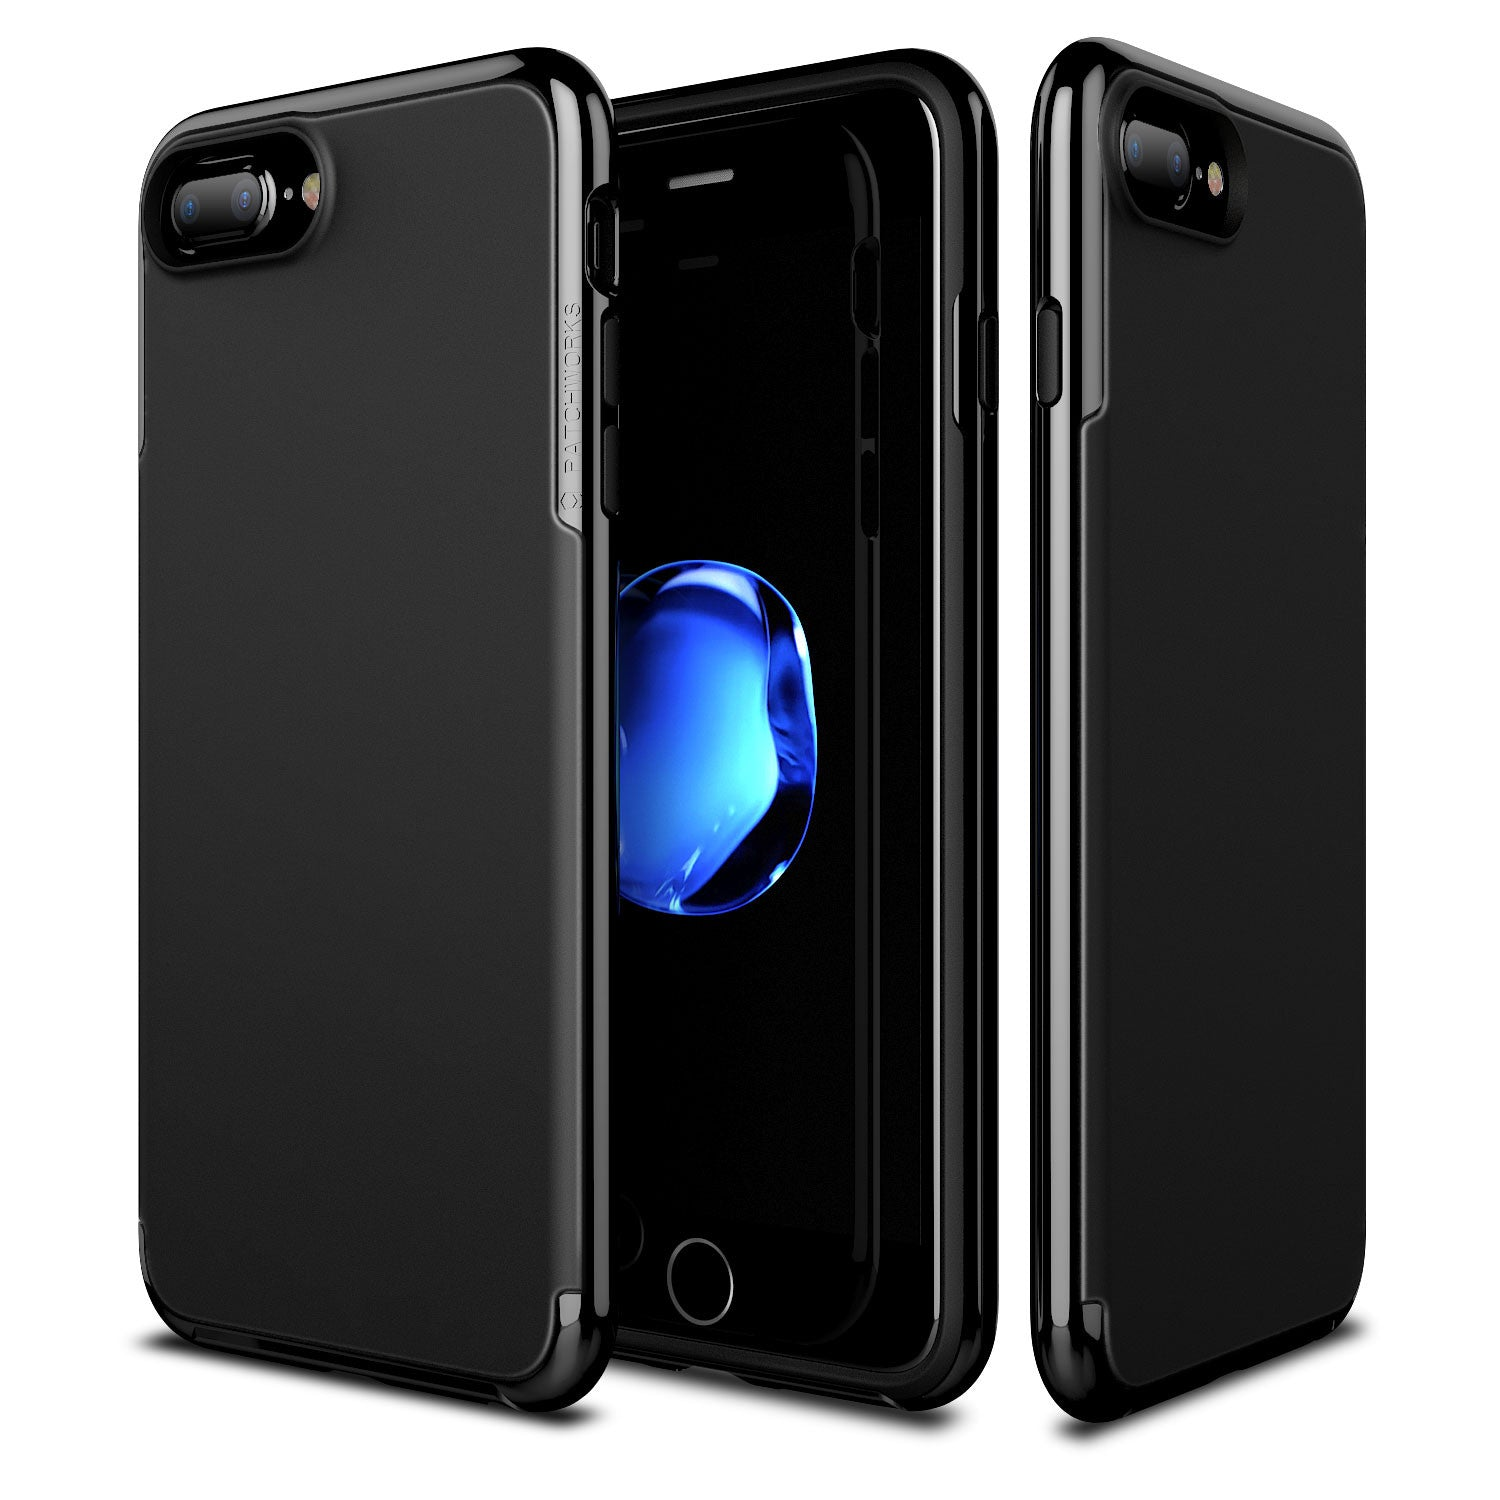 IPHONE 8 PLUS / 7 PLUS / 6S PLUS / 6 PLUS - SENTINEL GRIP